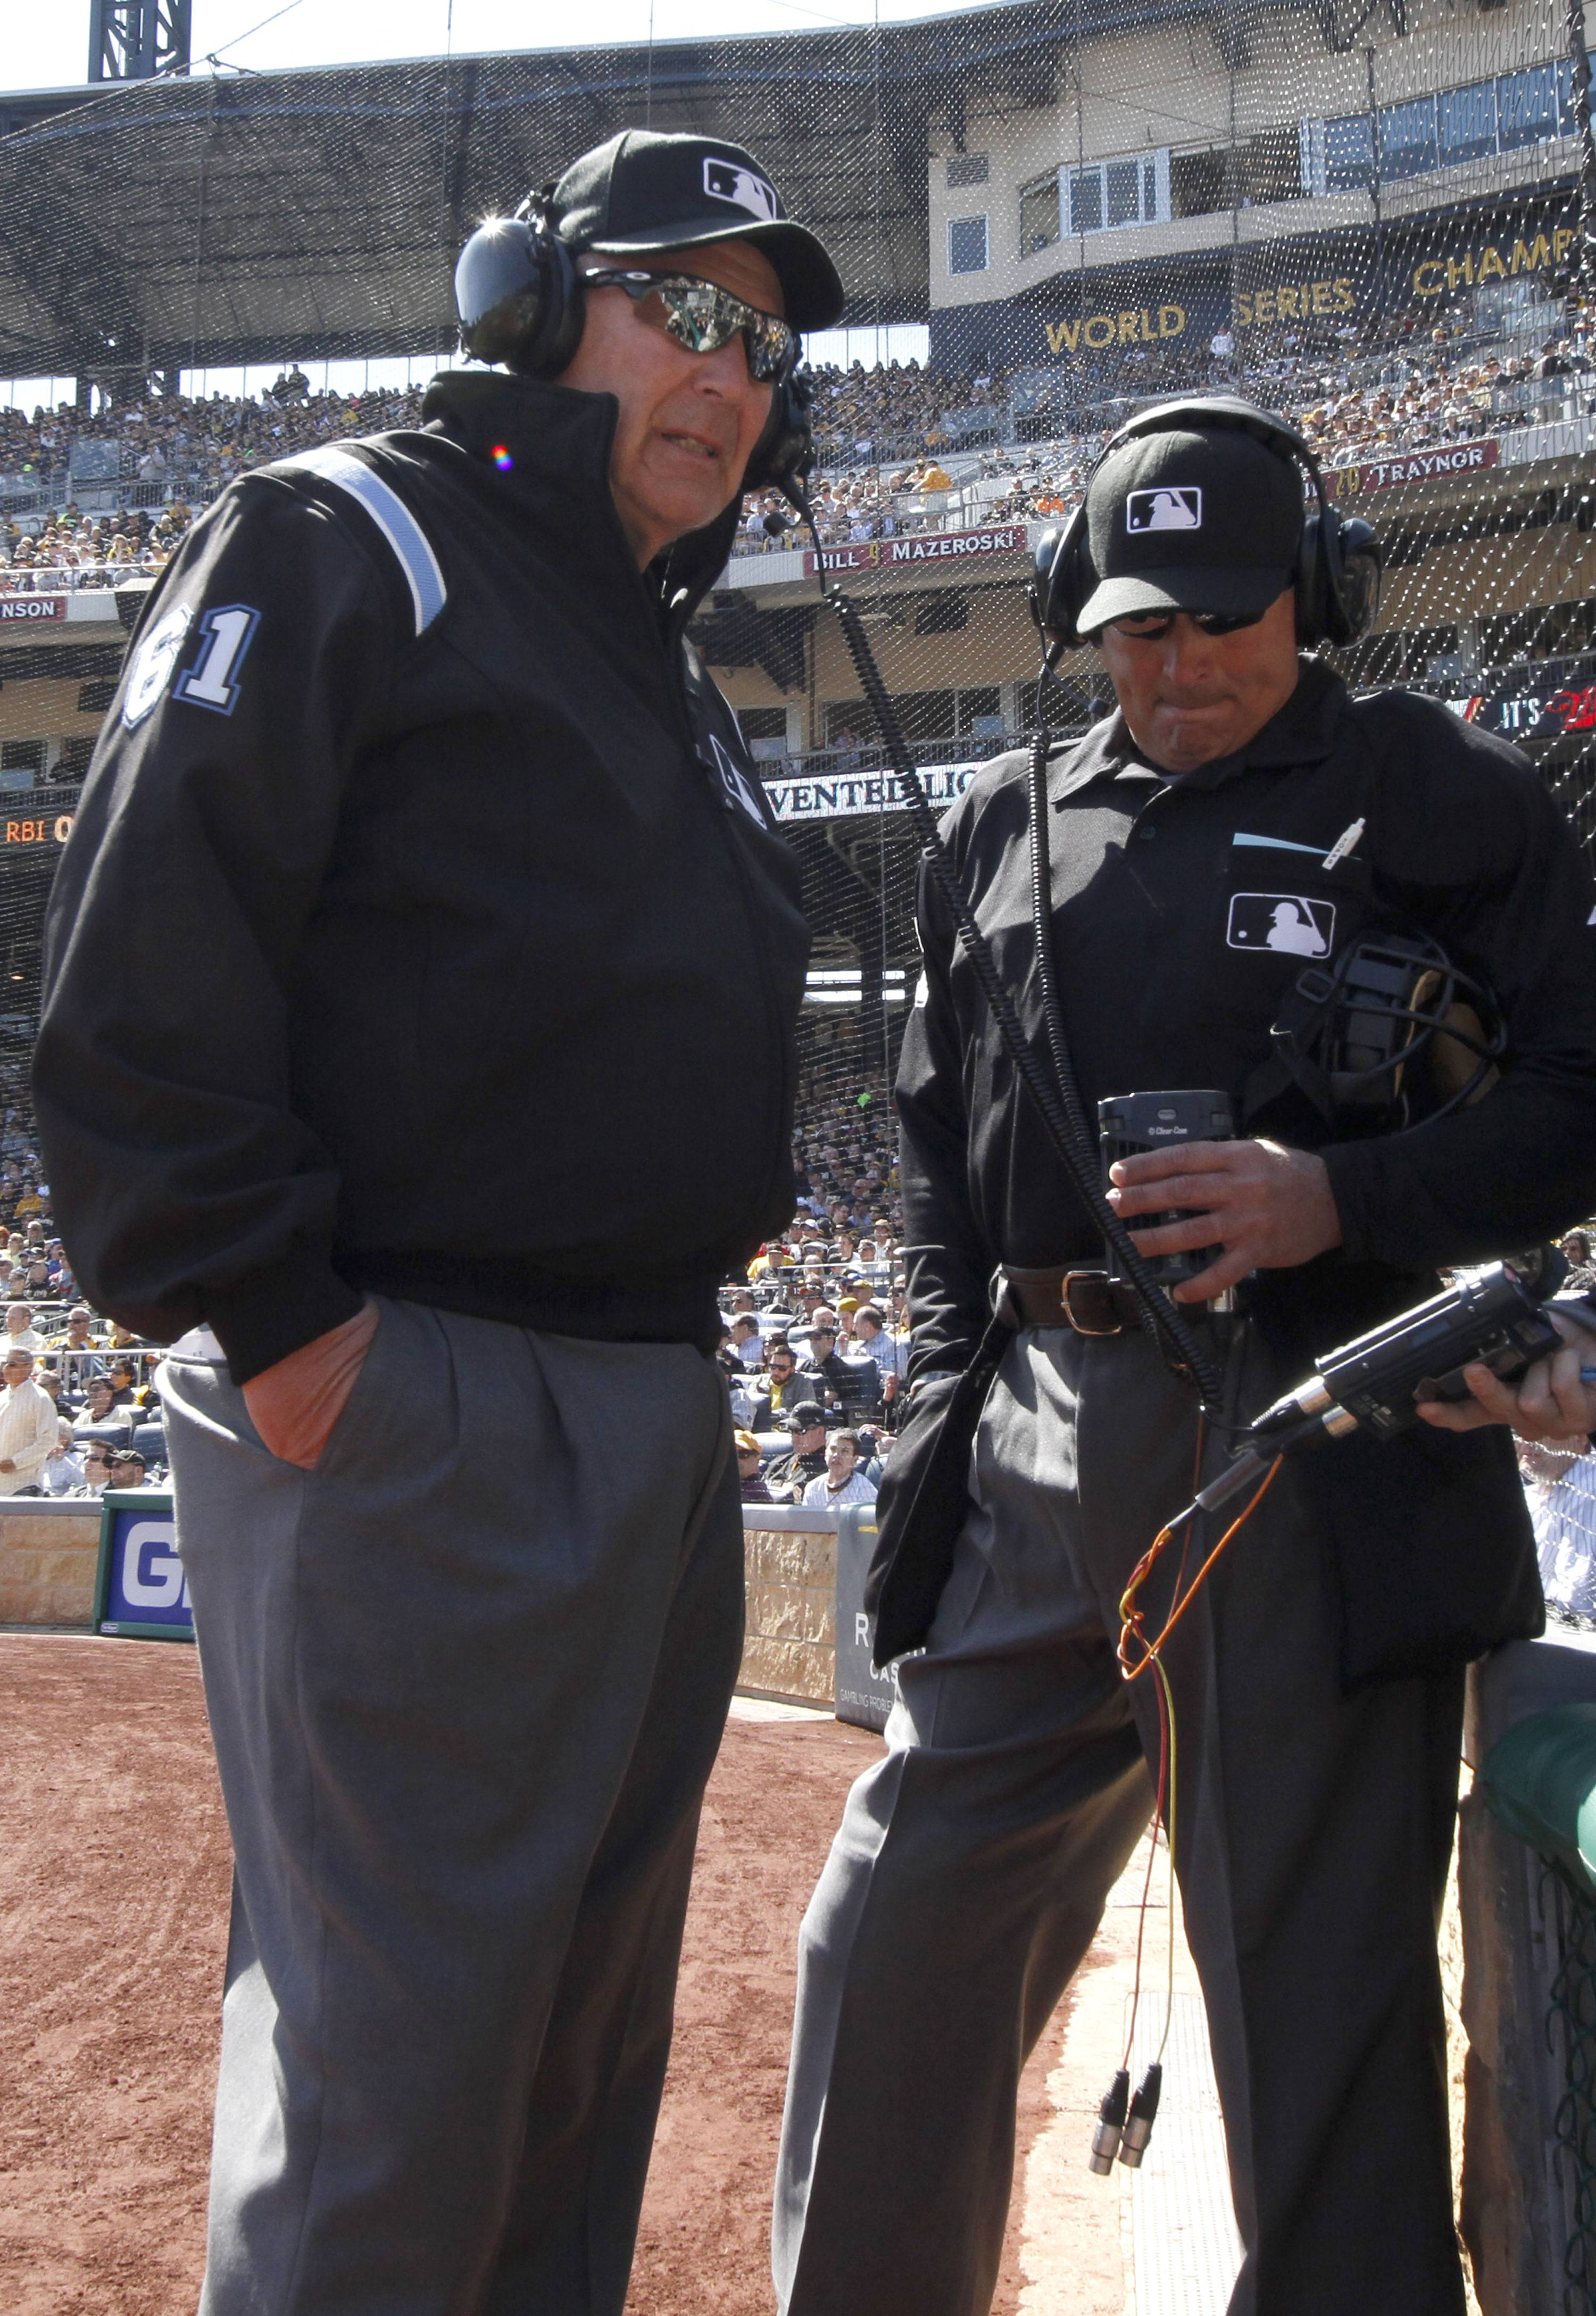 First base umpire Bob Davidson and home plate umpire John Hirschbeck, talk over headsets as a play at first base is being reviewed in the fifth inning. Chicago Cubs manager Rick Renteria requested a replay on an out call.